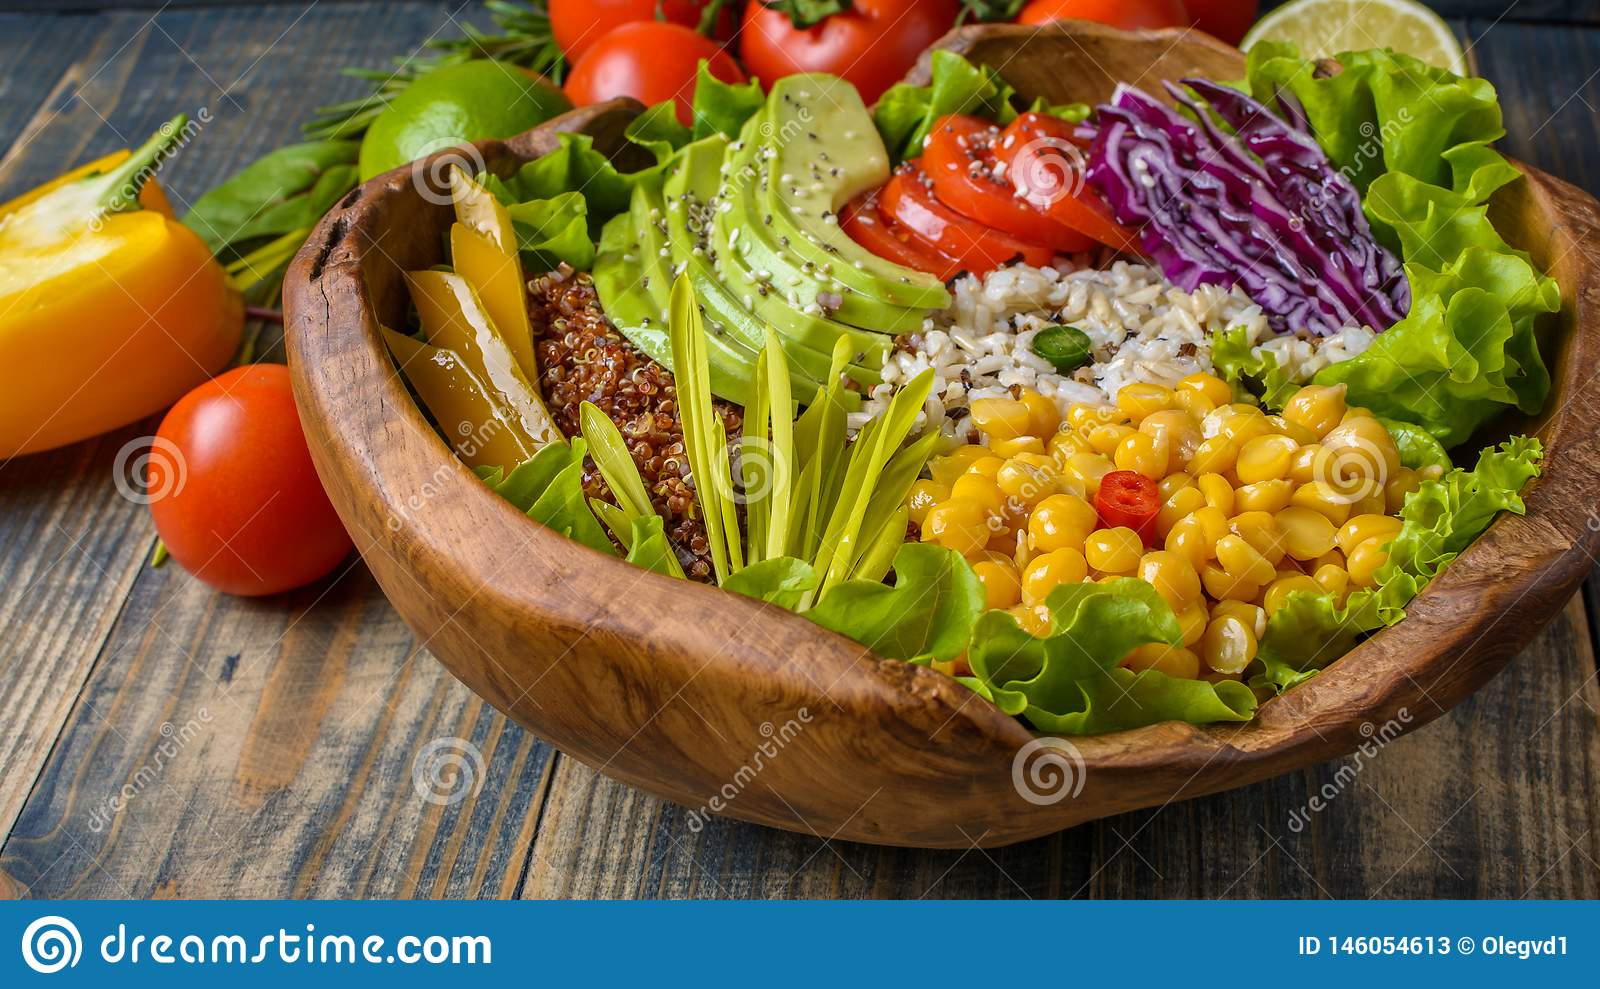 Buddha bowl with chickpea, avocado, wild rice, quinoa seeds, bell pepper, tomatoes, greens, cabbage, lettuce on old shabby wooden